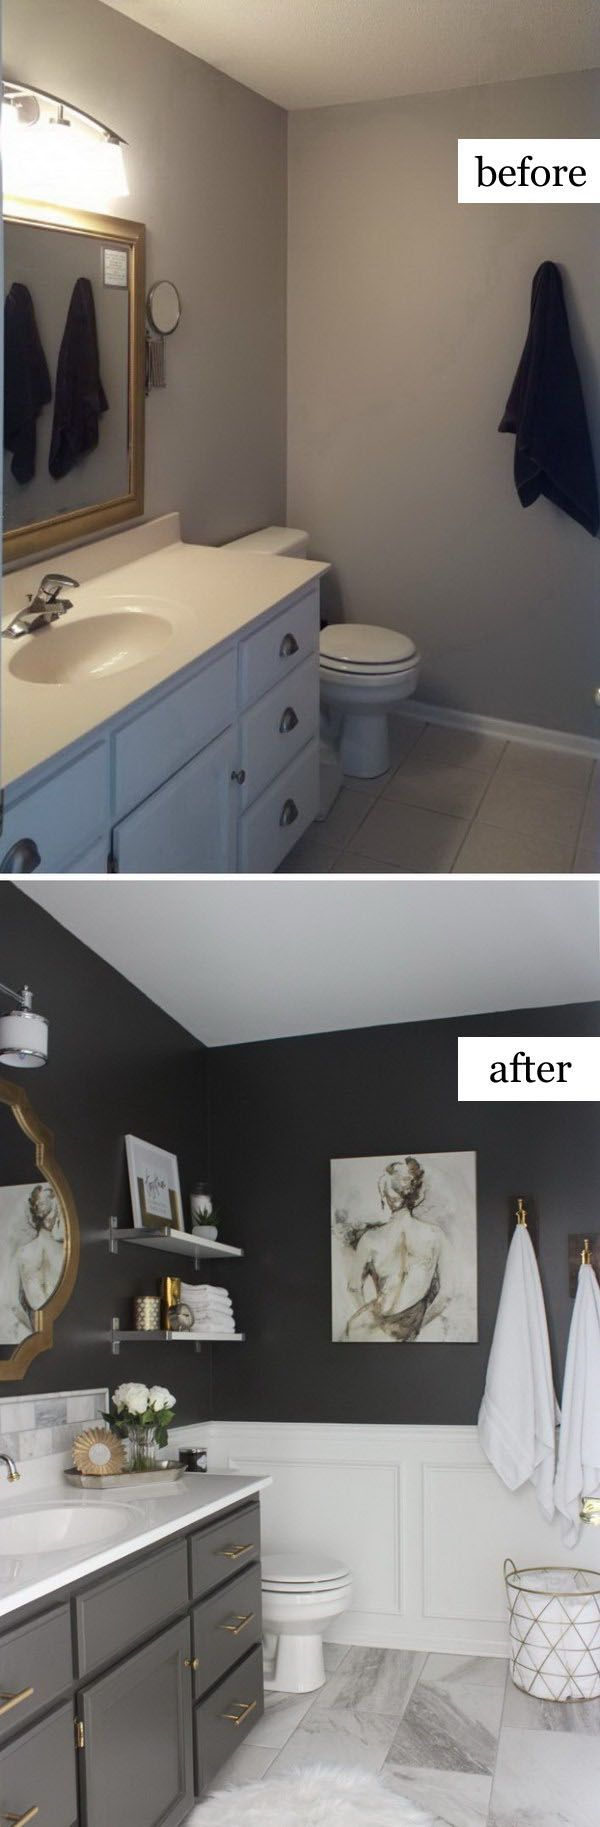 awesome before and after makeovers 20 most beautiful bathroom remodeling ideas